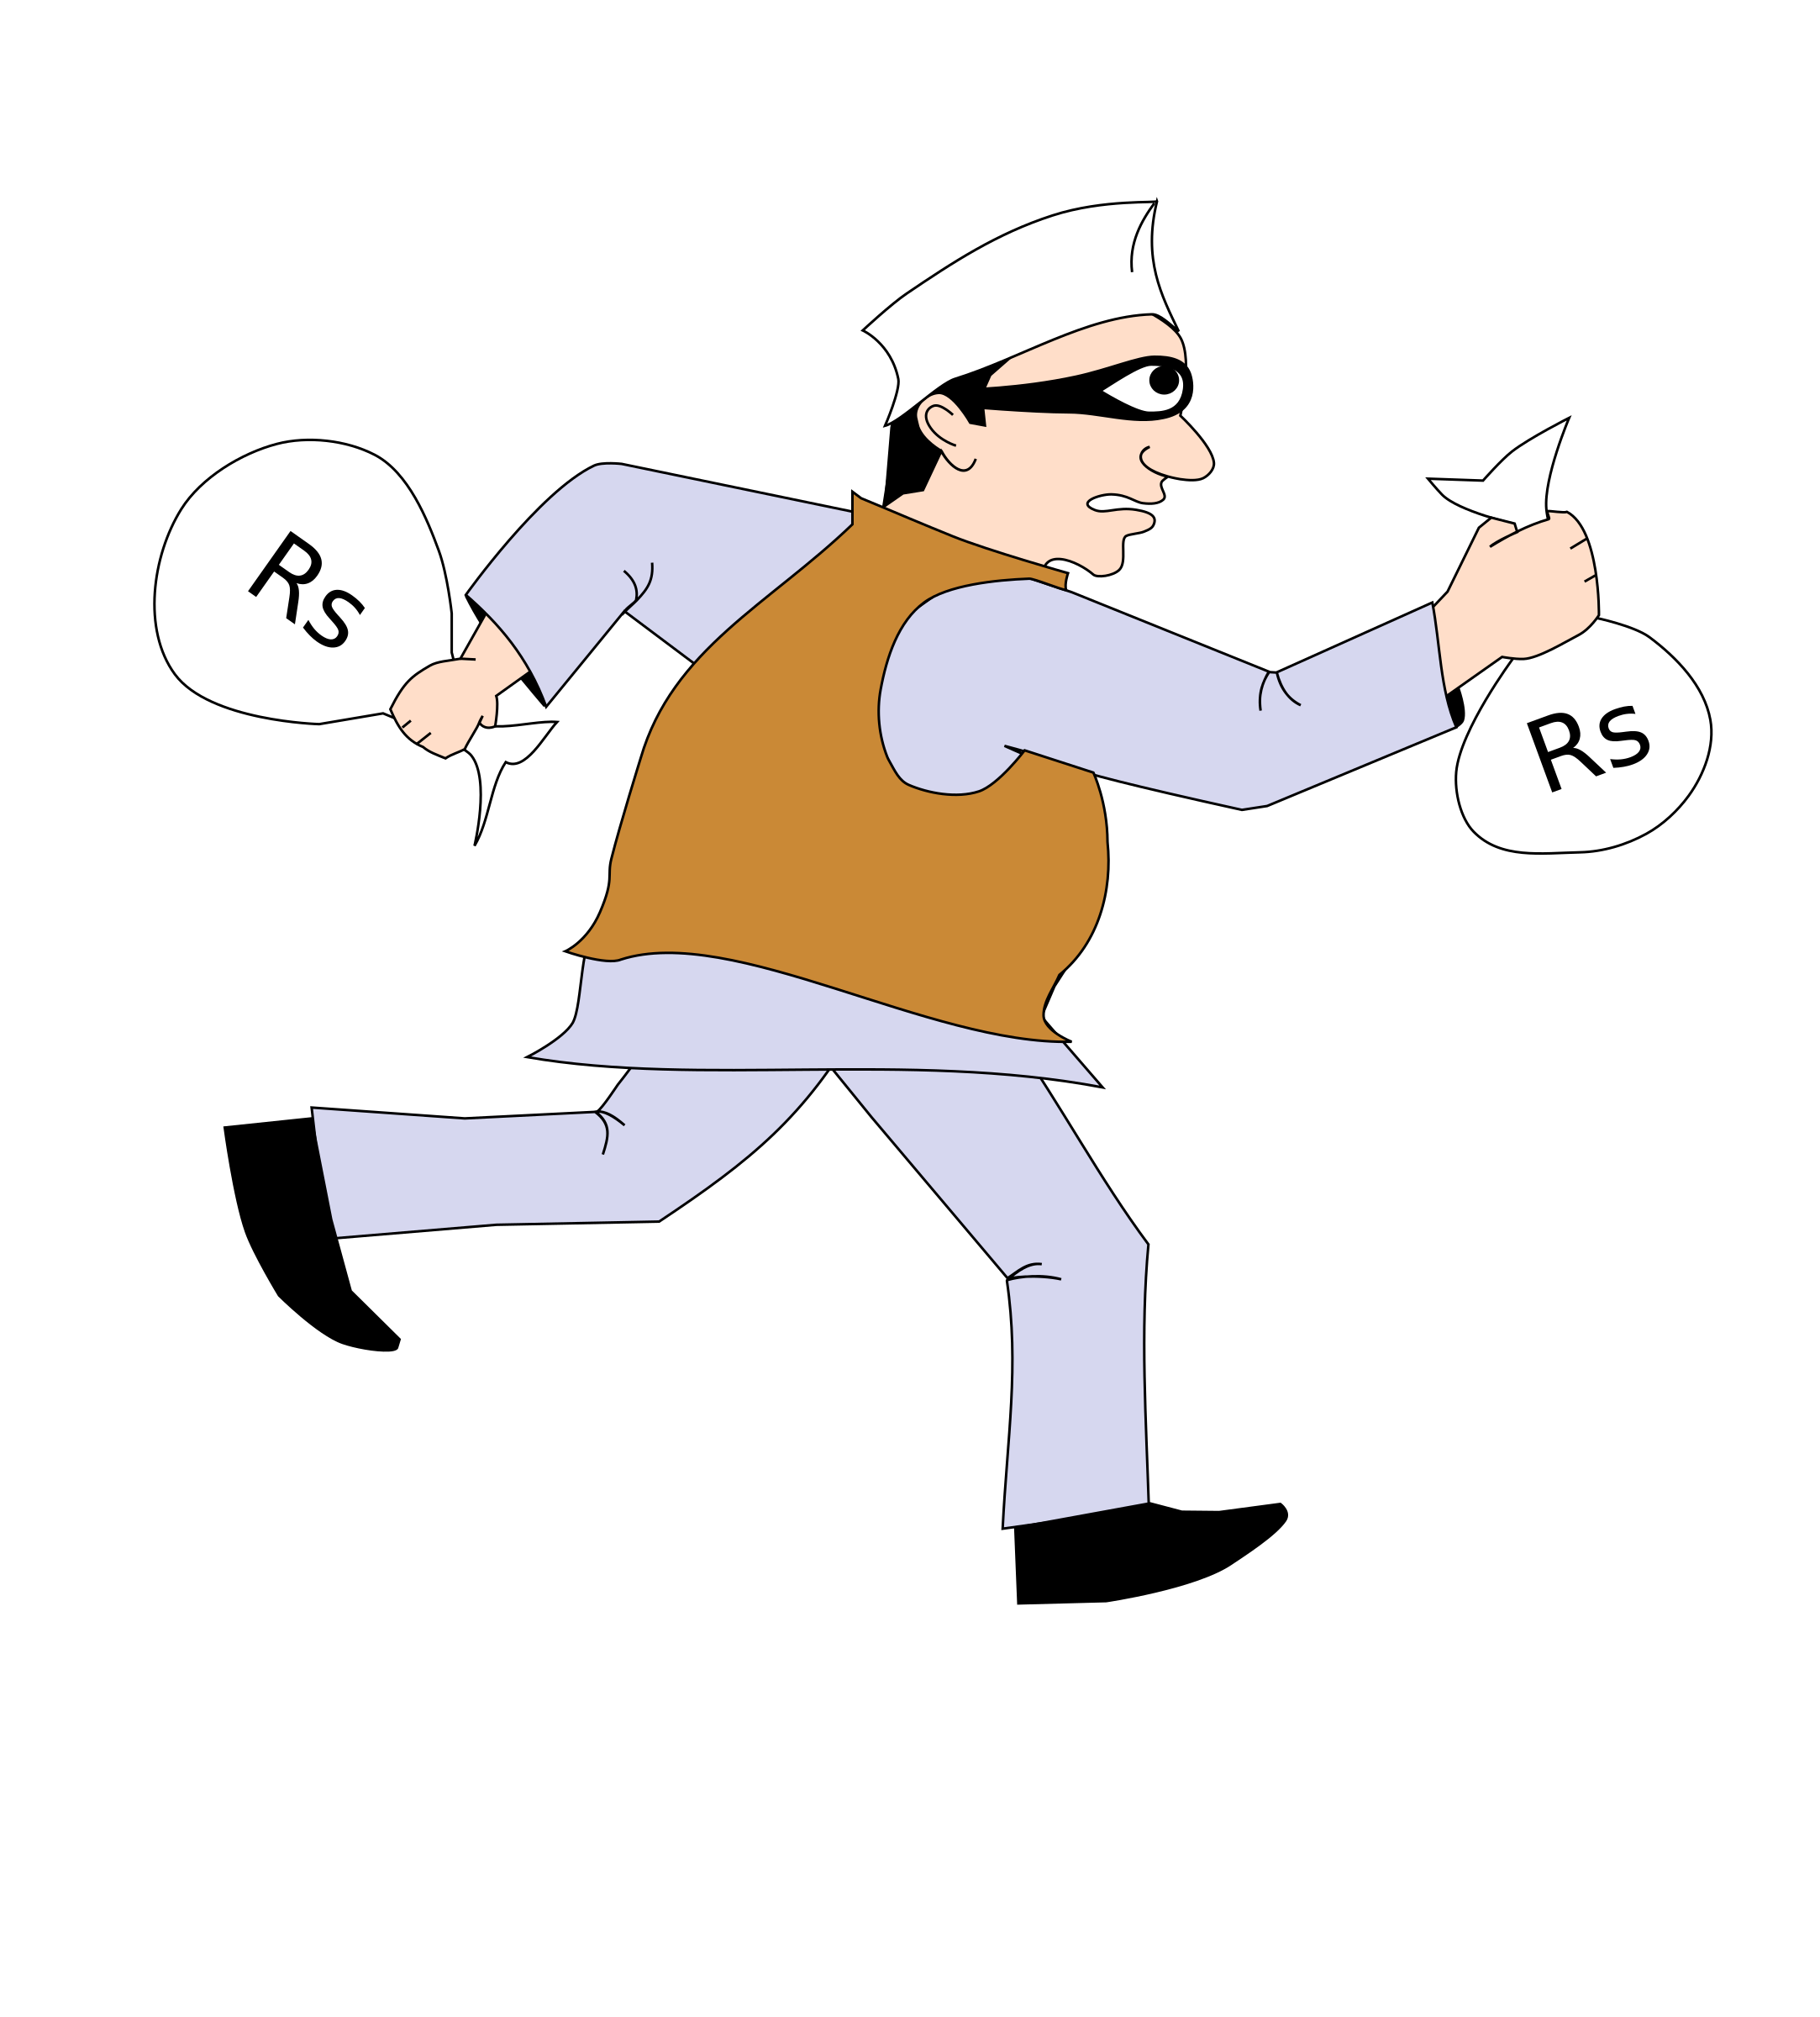 vector library library Politician clipart. Corrupt big image png.